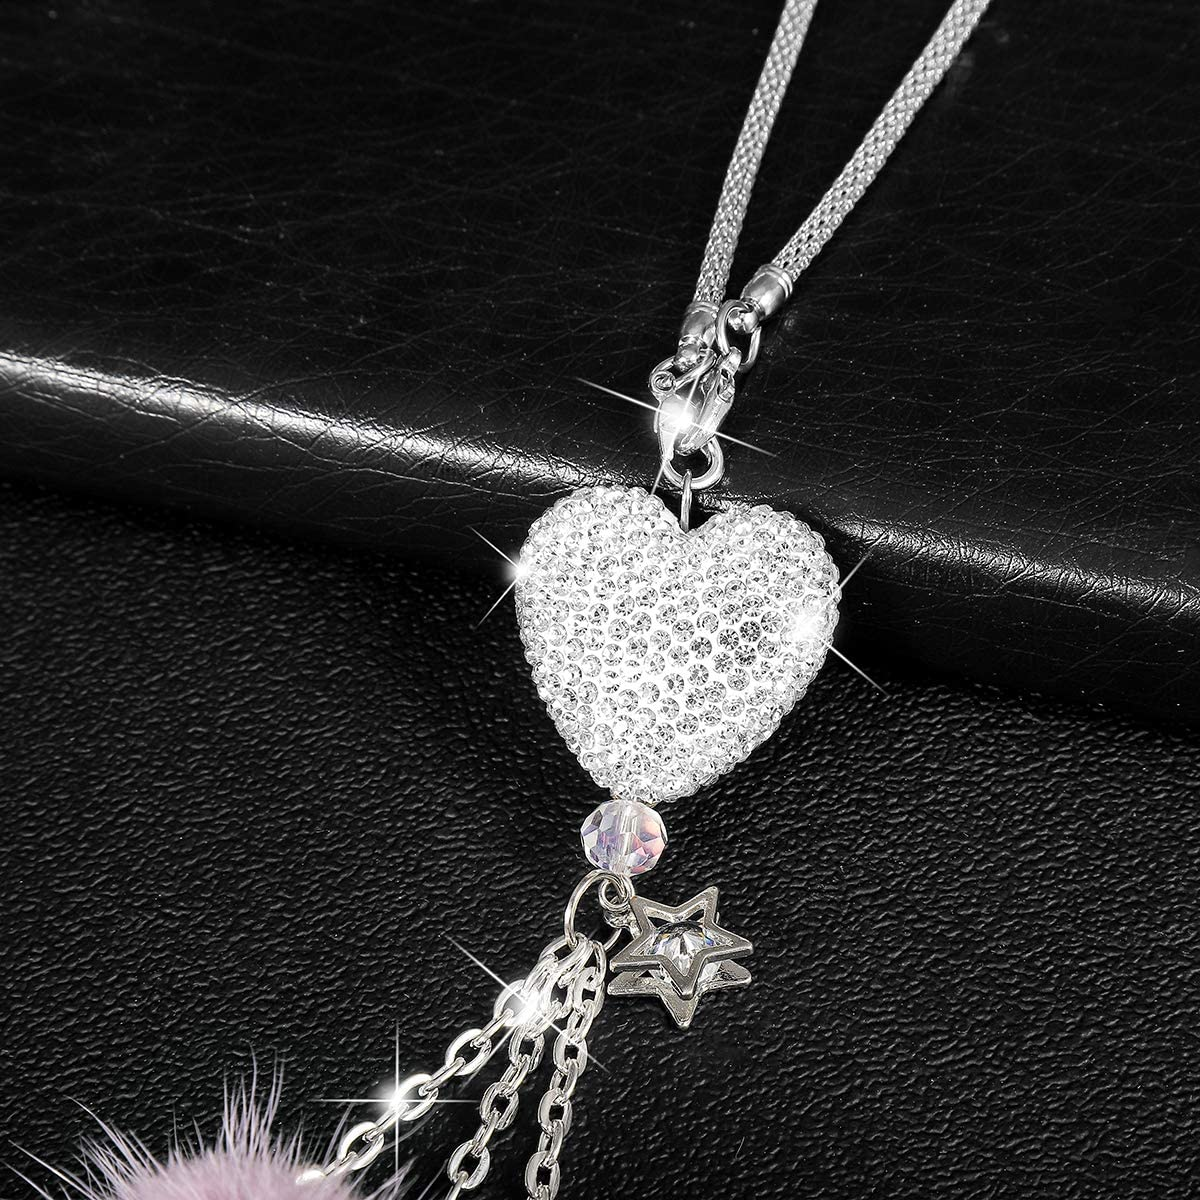 Alotex Bling Car Accessories for Women&Men Bling White Heart and Purple Fuzzy Drops Bling Rinestones Diamond Car Accessories Crystal Car Rear View Mirror Charms,Lucky Hanging Accessories Purple